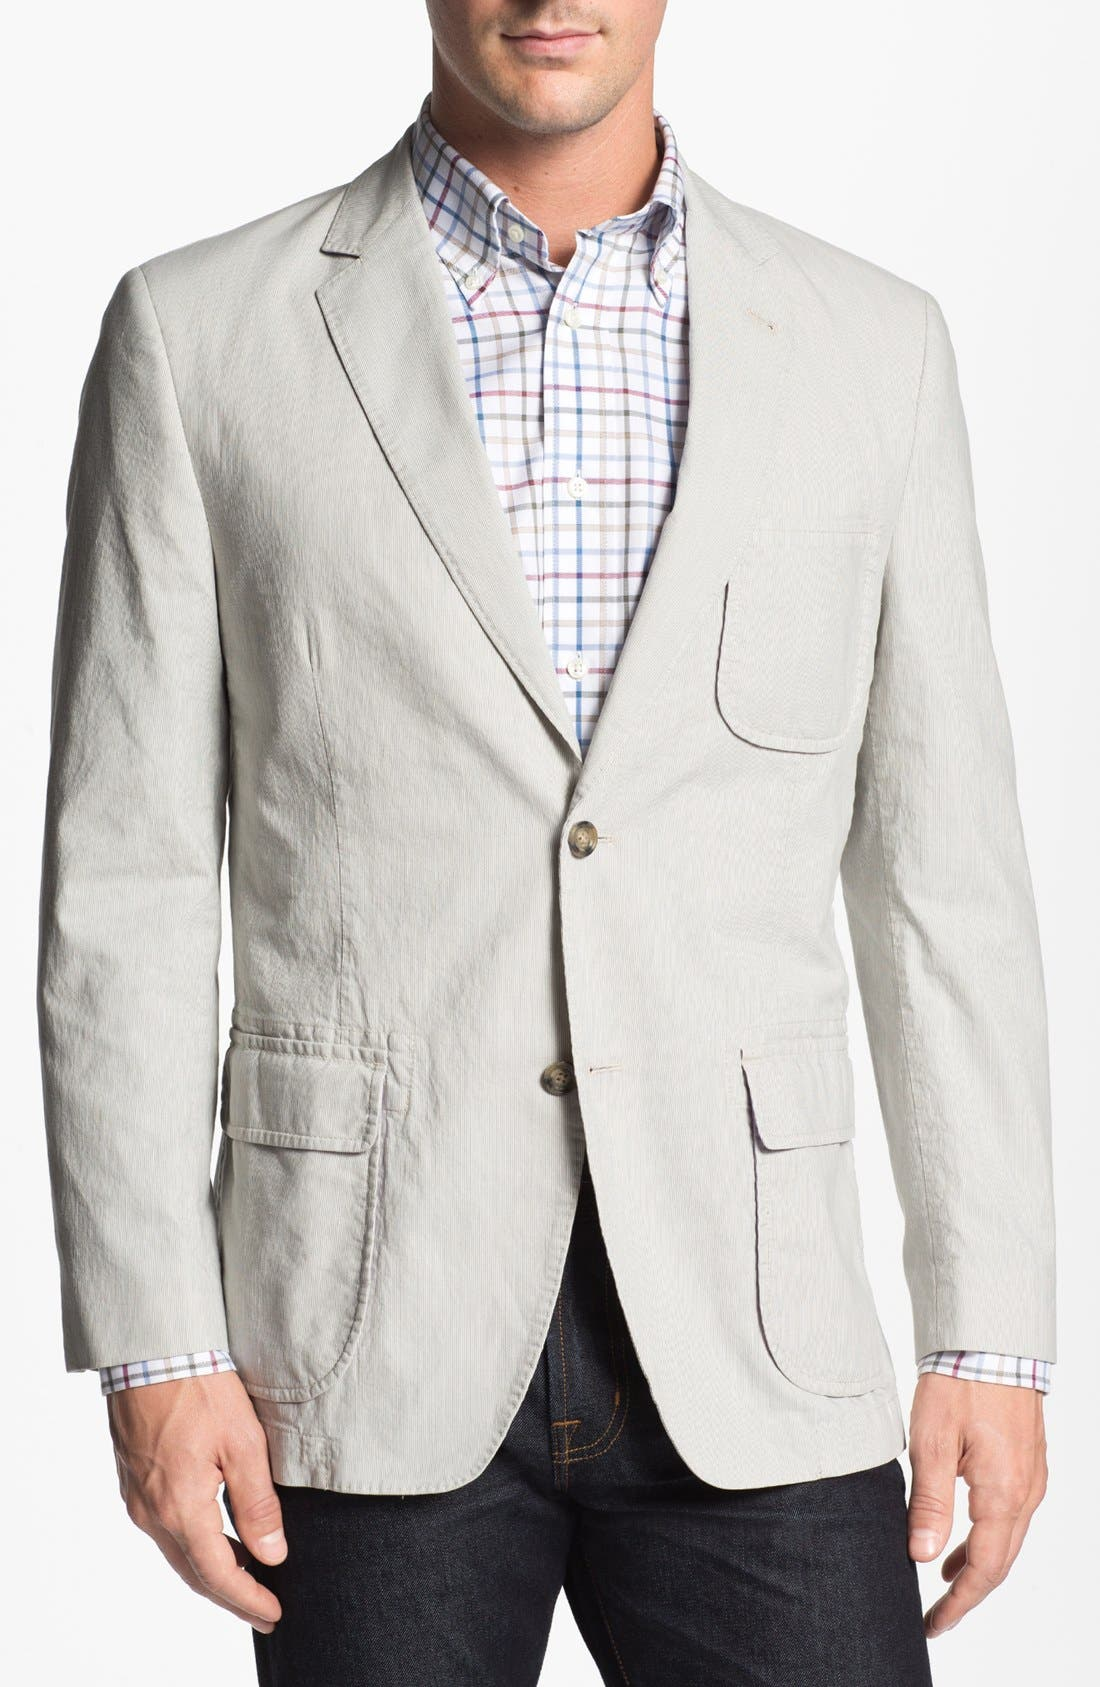 Alternate Image 1 Selected - Kroon 'Harrison' Cotton Blend Sportcoat